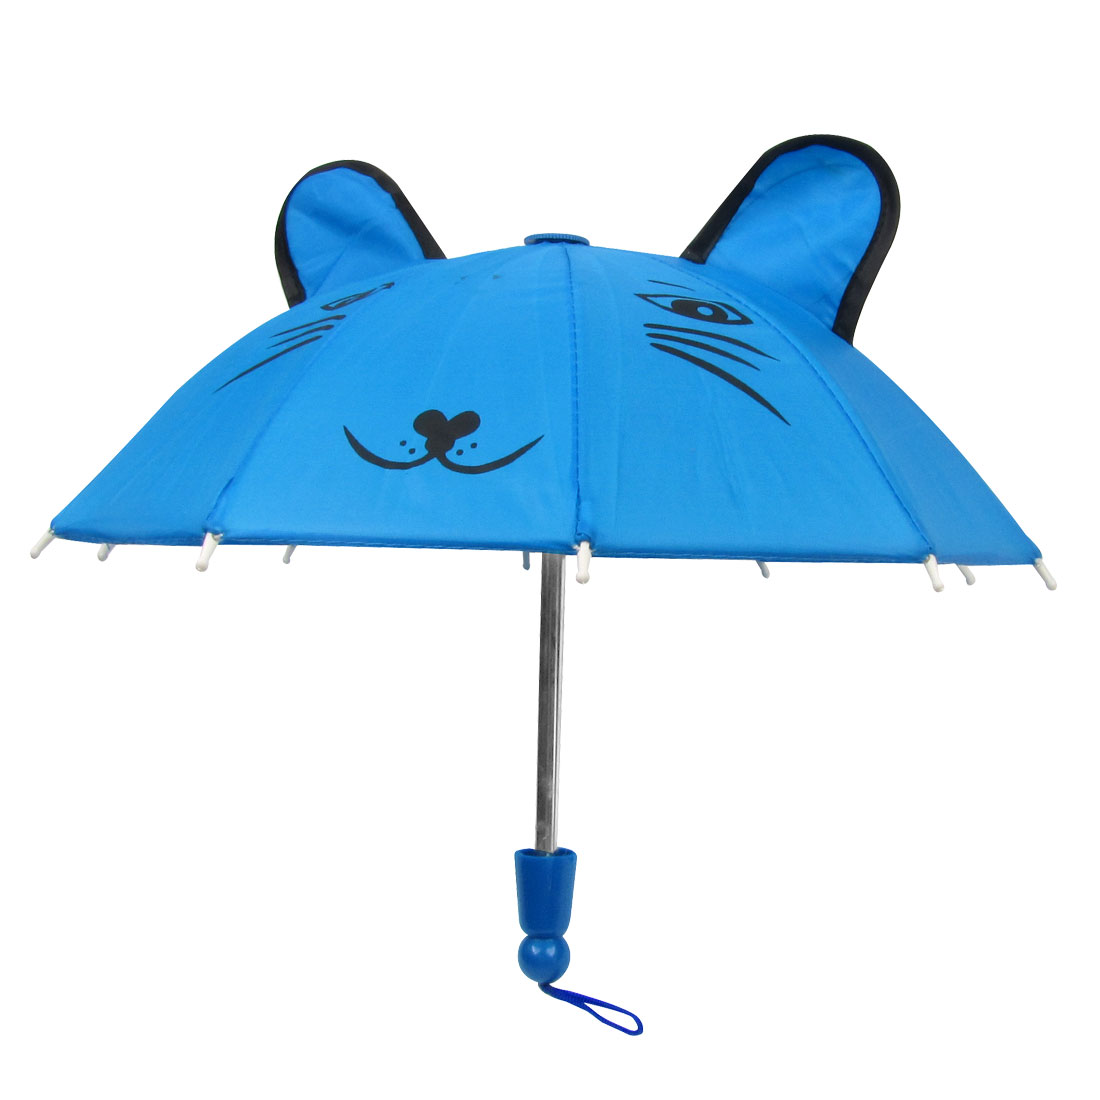 Protable Leopard Head Print 10 Metal Ribs Umbrella Toy Blue for Kids